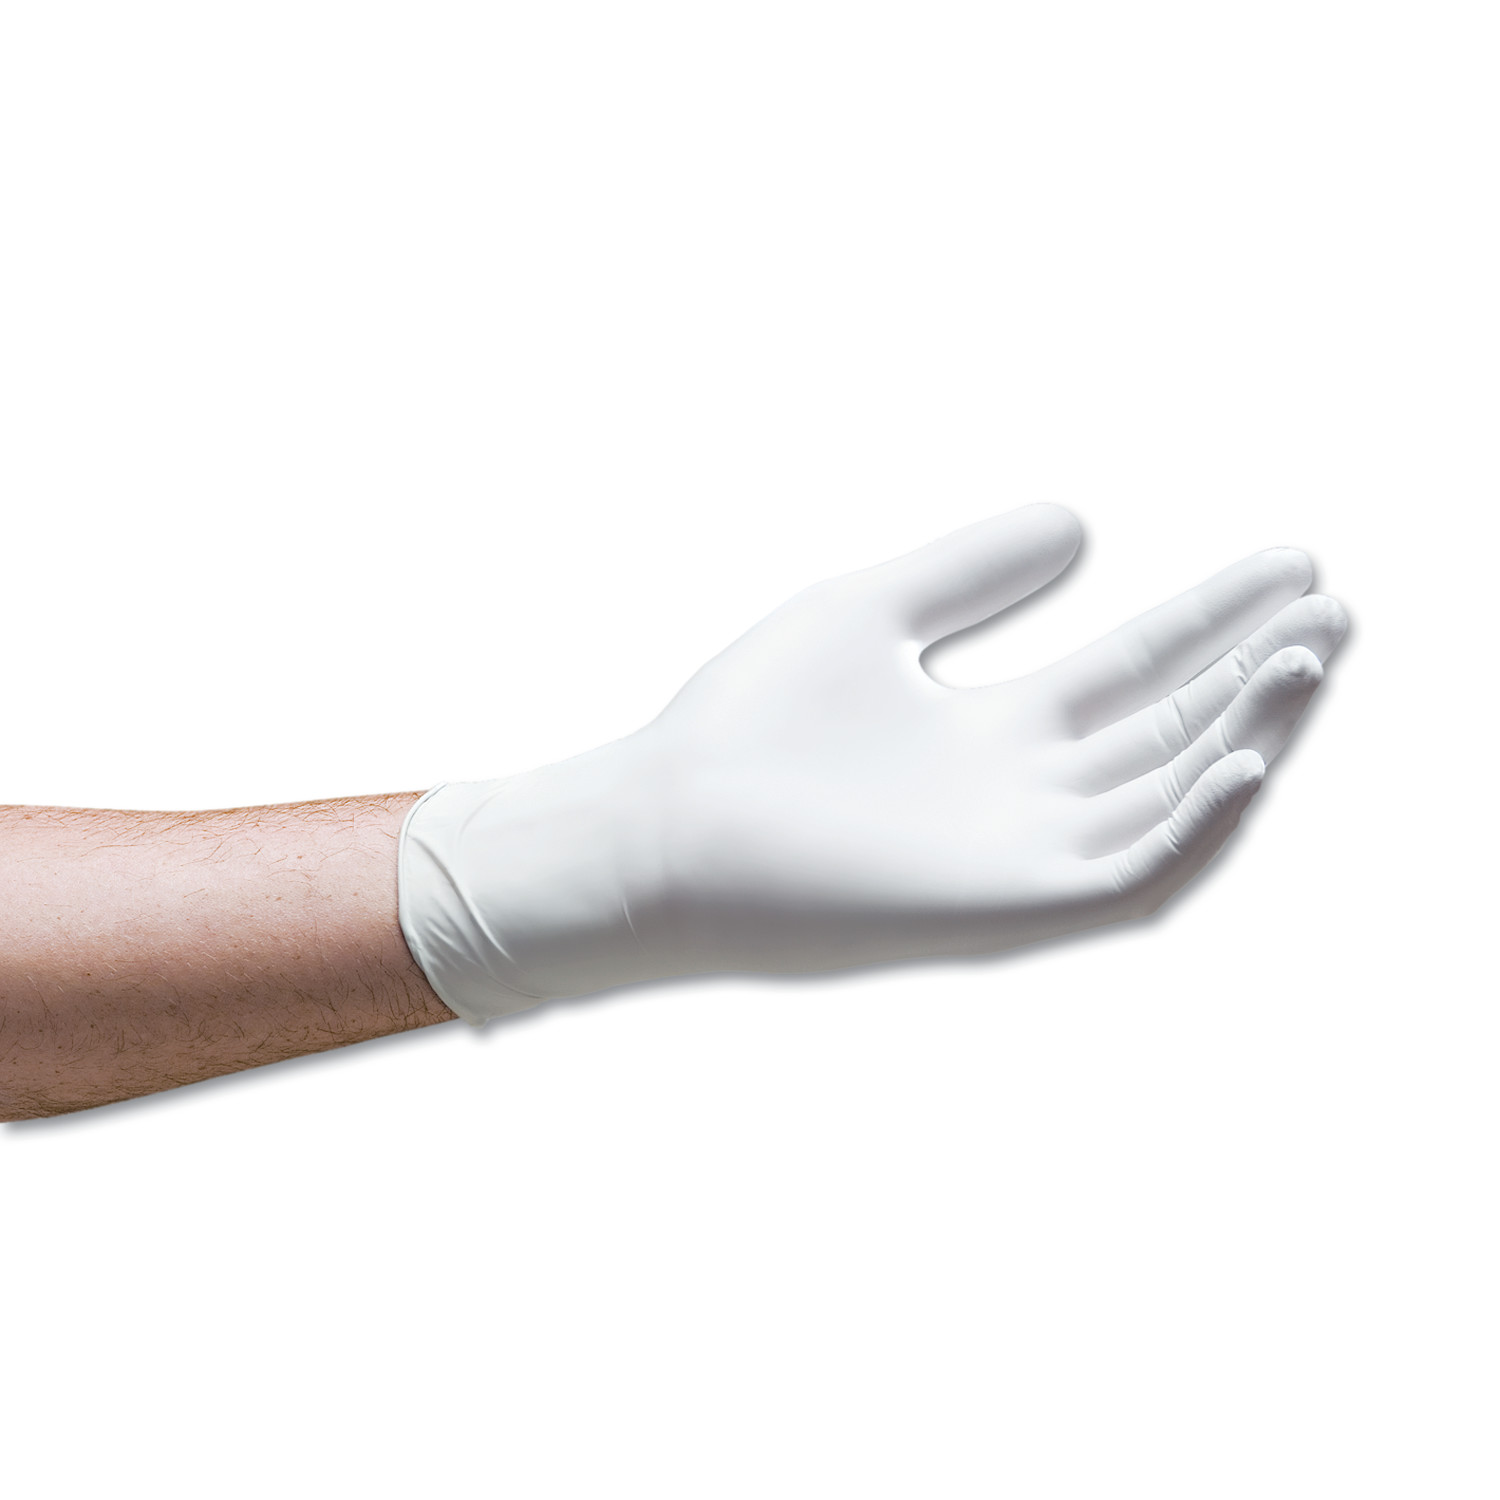 Kimberly-Clark Professional* STERLING Nitrile Exam Gloves, Powder-free, Sterling Gray, X-Small, 200/Box